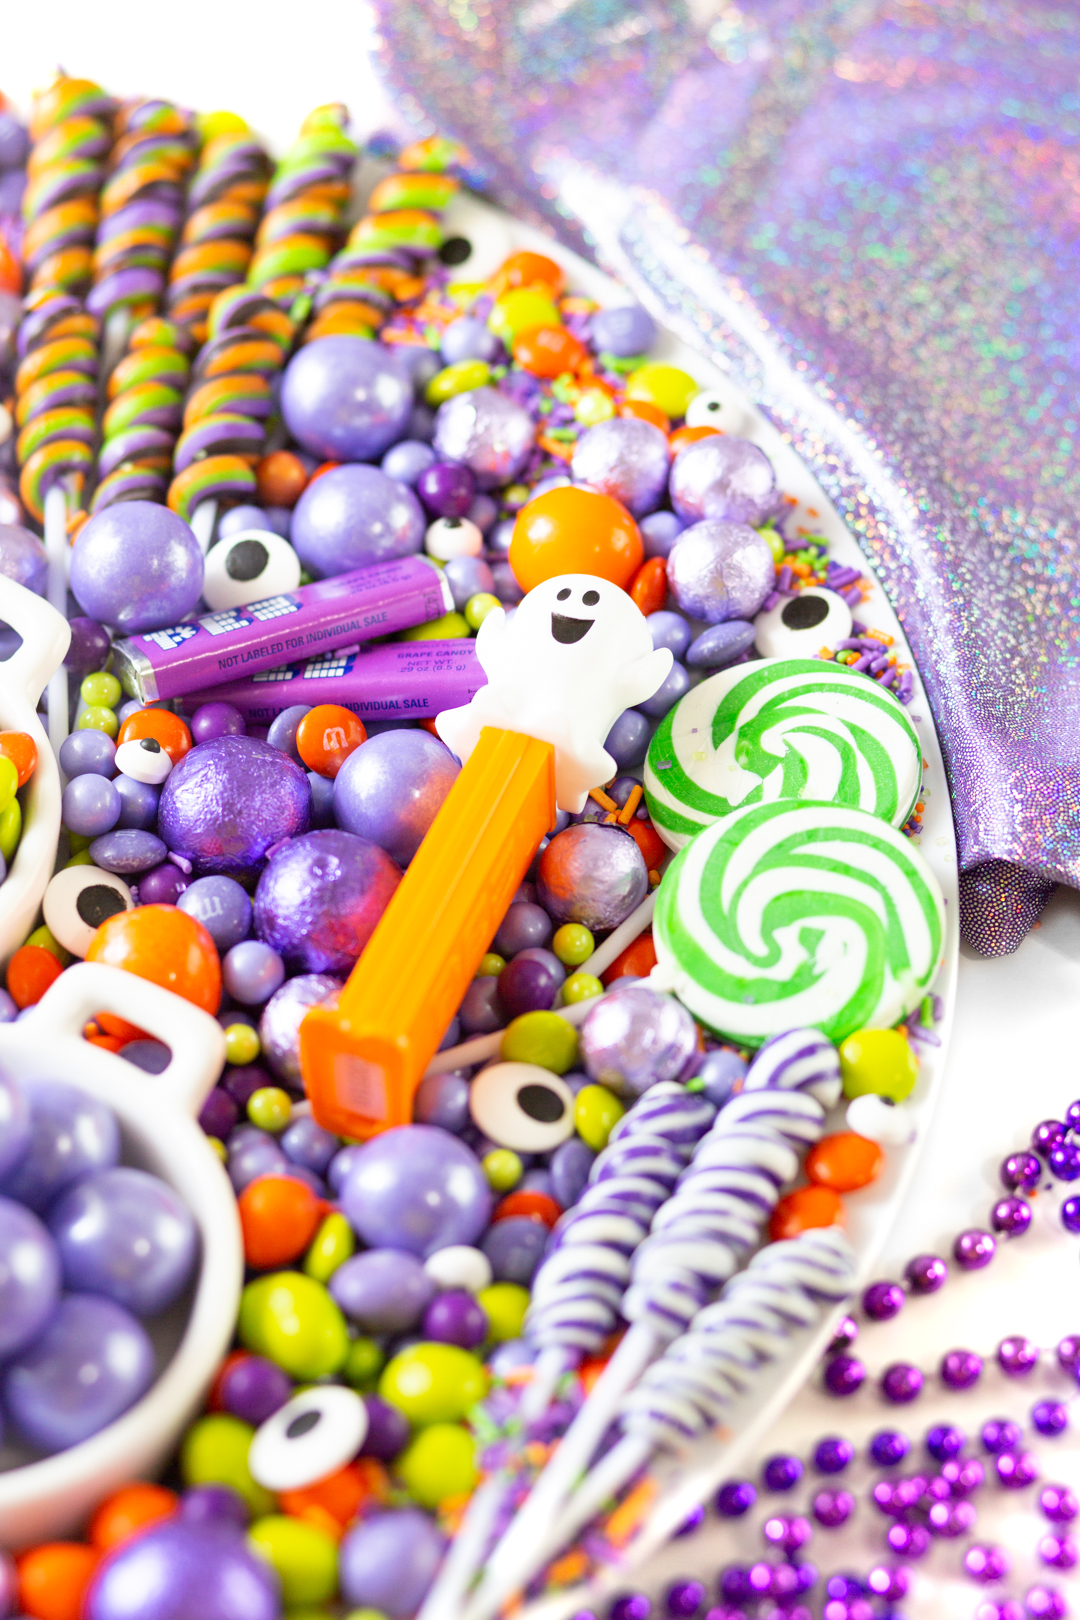 Ghost Pez dispenser, green swirl lollipops, purple swirl lollipops, eye candy